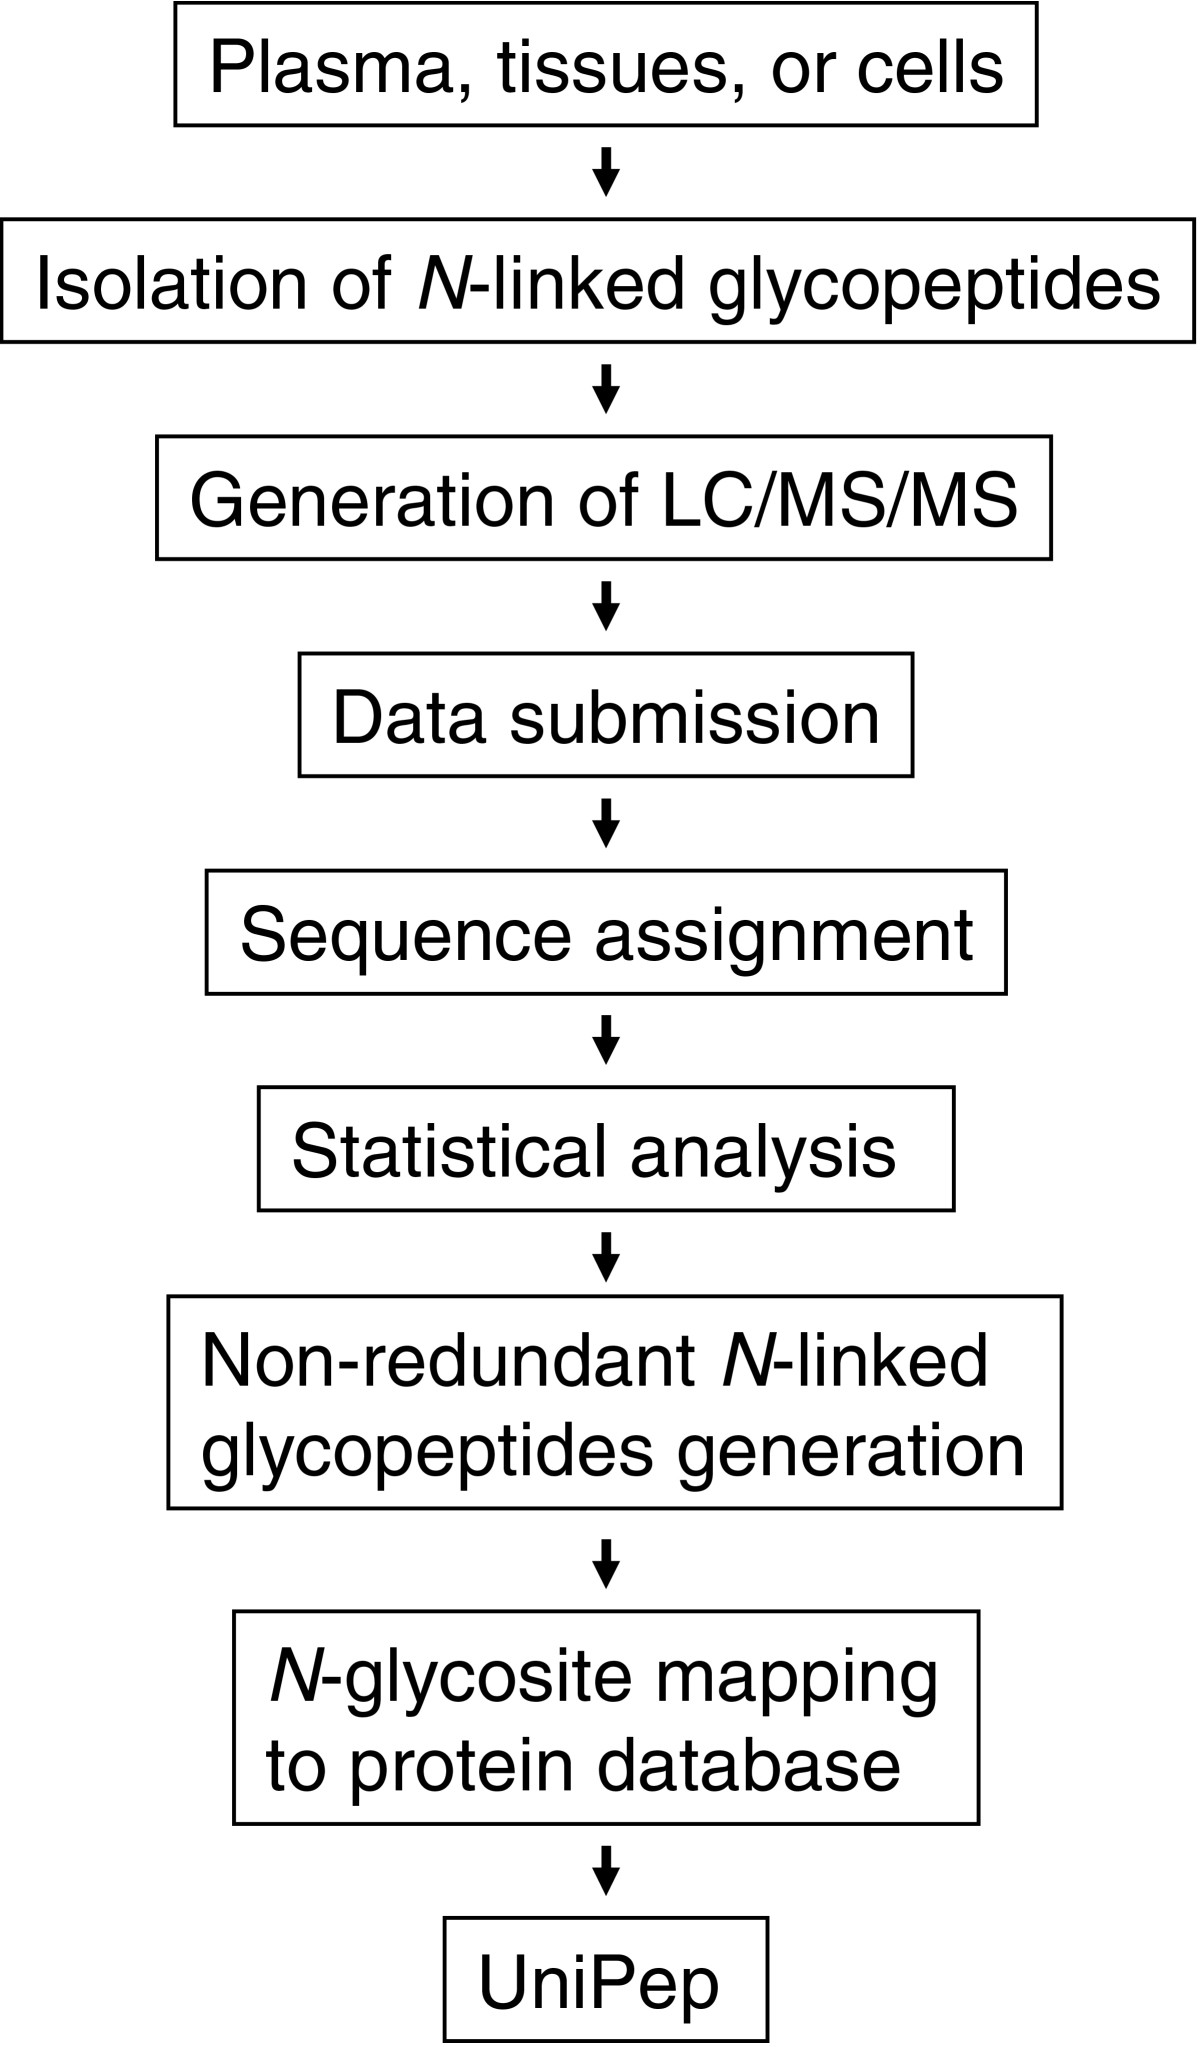 https://static-content.springer.com/image/art%3A10.1186%2Fgb-2006-7-8-r73/MediaObjects/13059_2006_Article_1341_Fig2_HTML.jpg